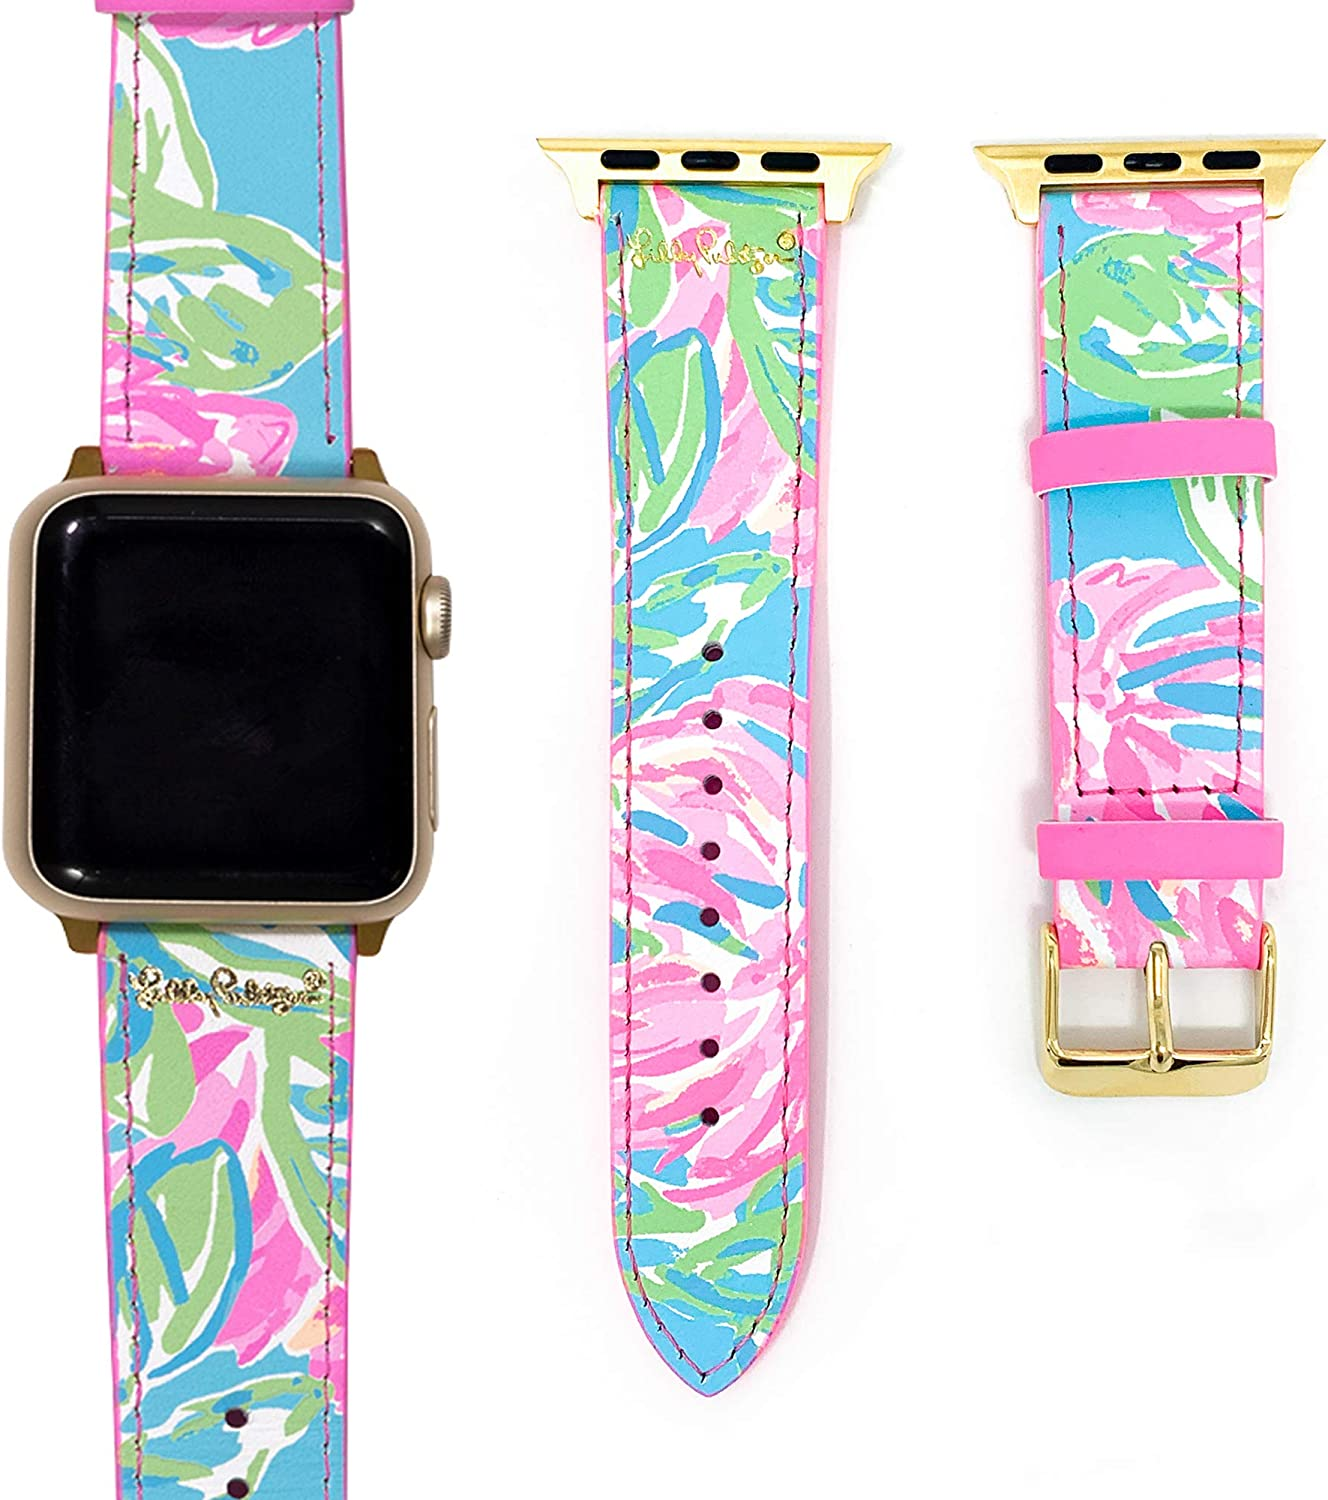 Lilly Pulitzer Genuine Leather Watch Band Sized to Fit 38mm & 40mm Smartwatches Compatible with Apple Watch Series 1, 2, 3, & 4 (Totally Blossom)